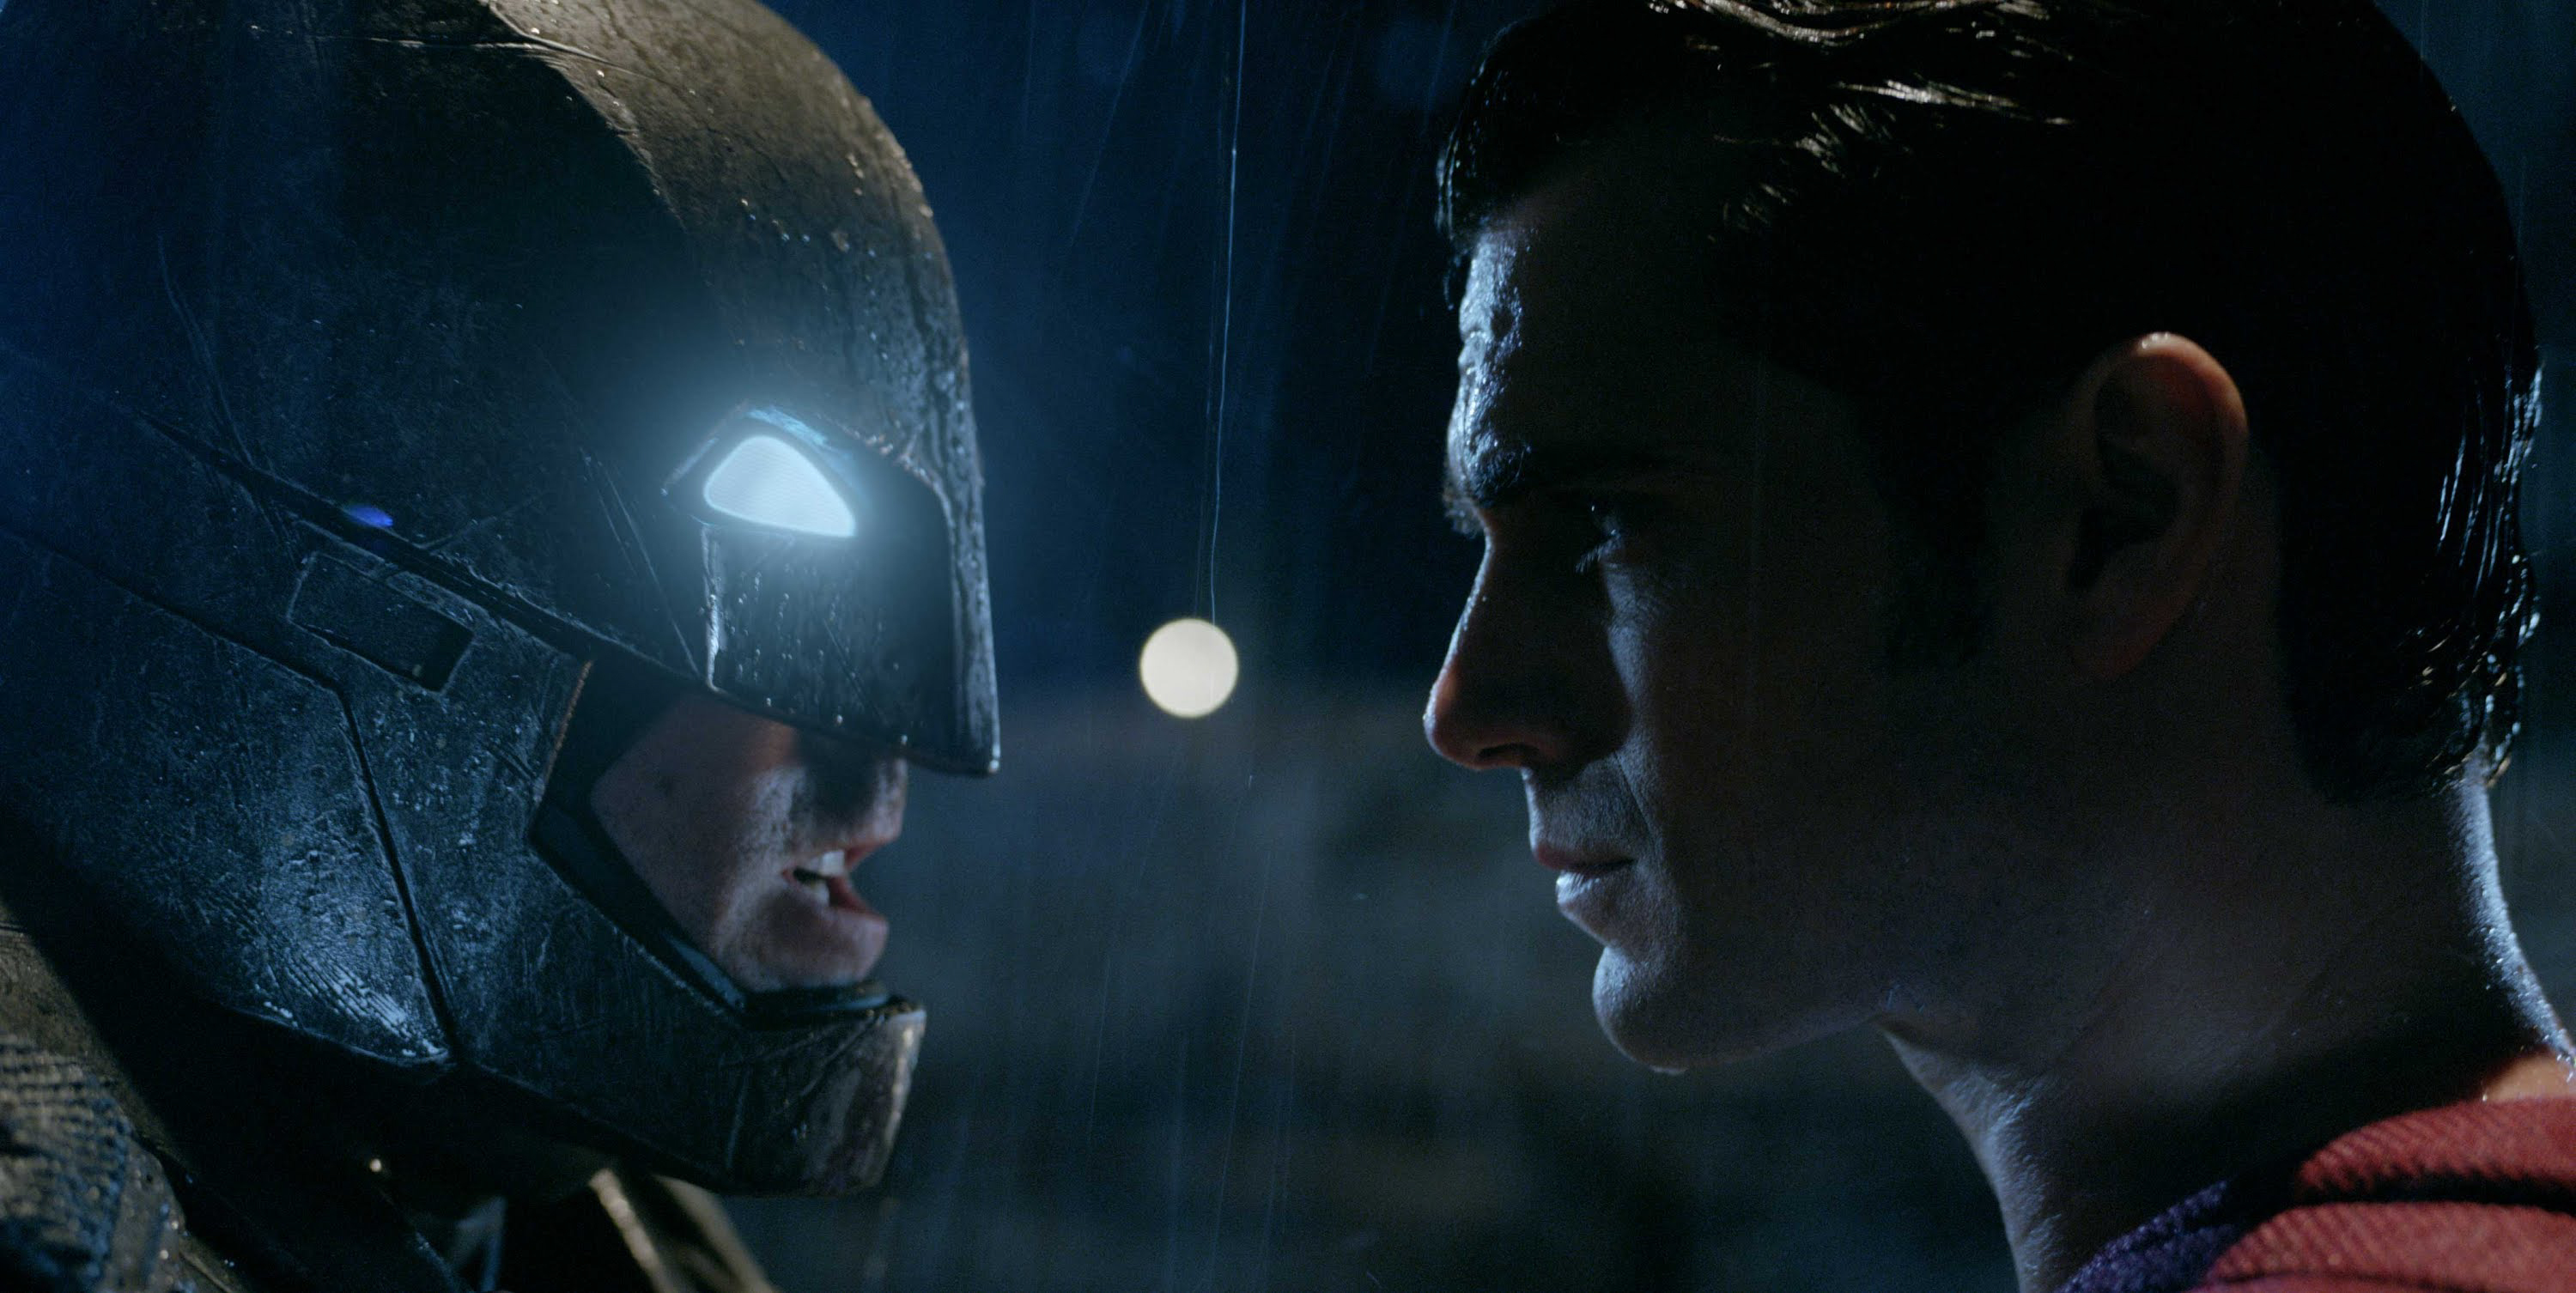 Ben Affleck as Batman and Henry Cavill as Superman quite literally face off before battling each other.